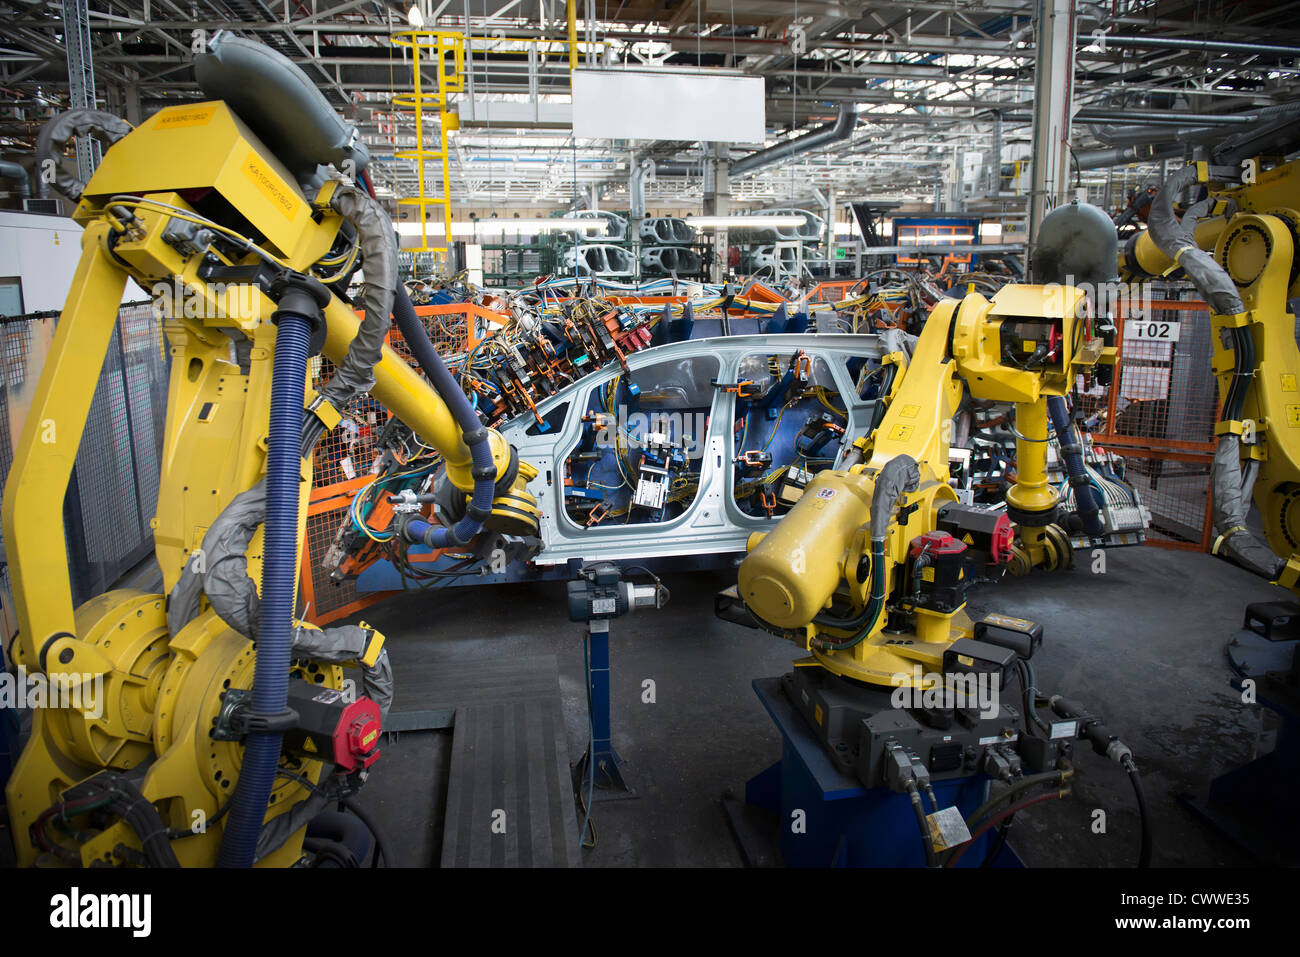 Robots welding car body in car factory - Stock Image